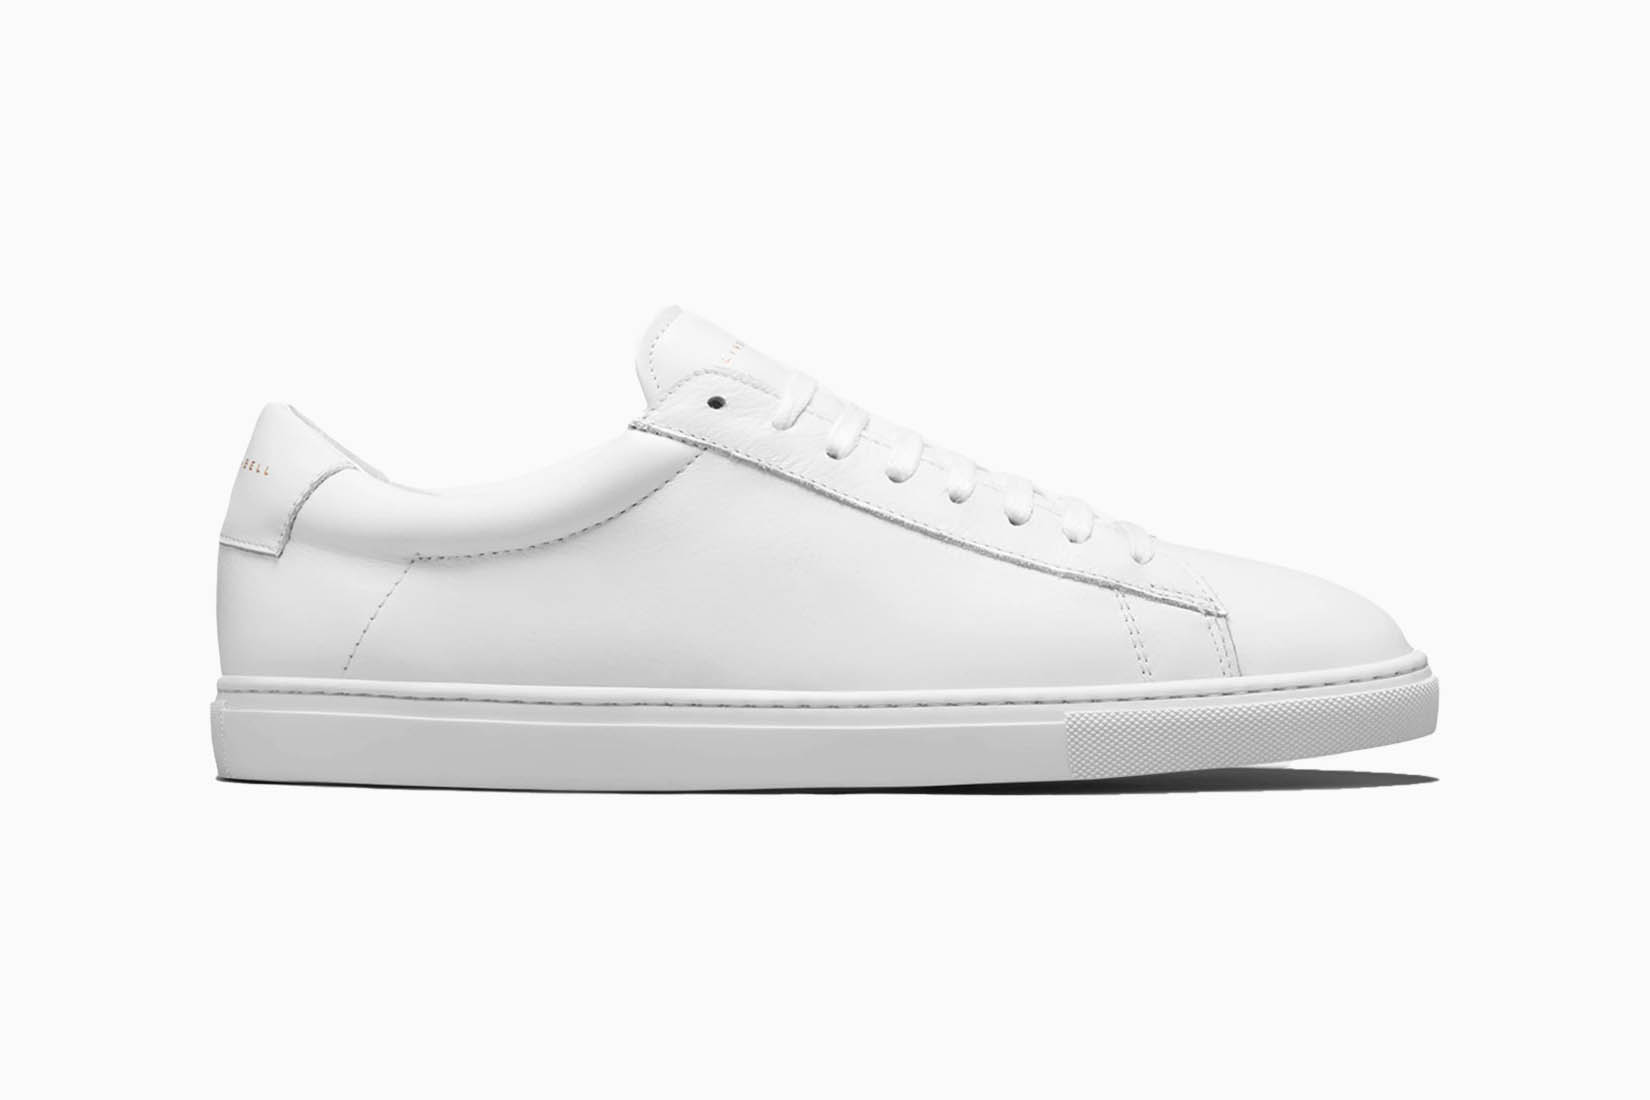 best sneakers women oliver cabell review Luxe Digital